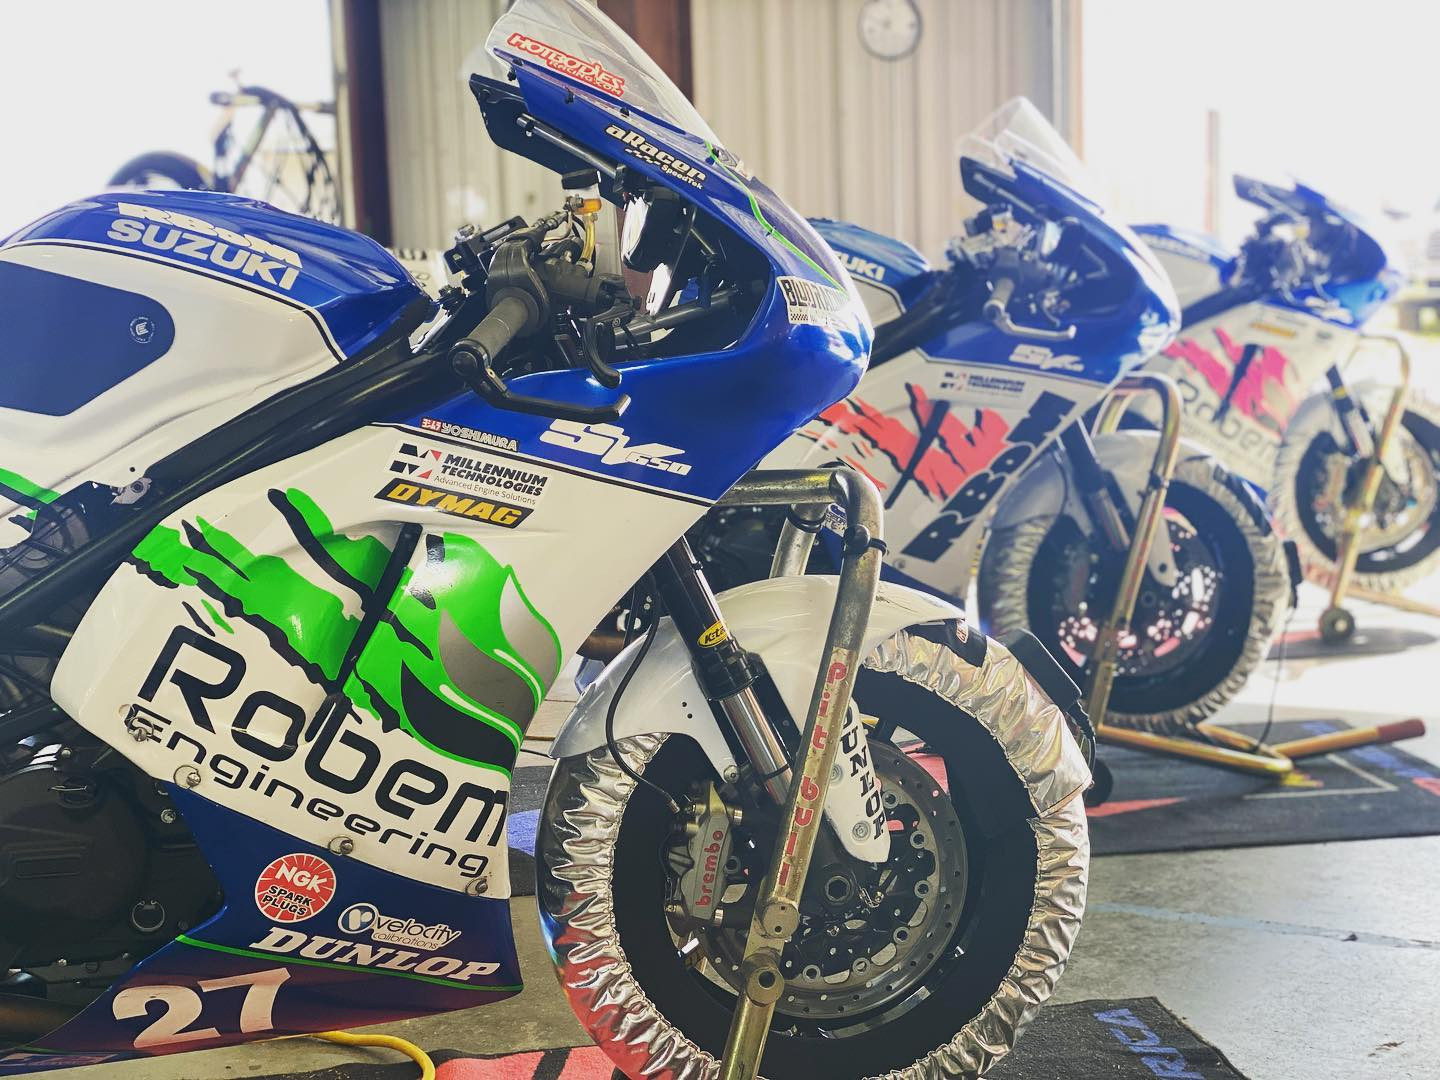 Robem Engineering-sponsored MotoAmerica Twins Cup racebikes with K-Tech suspension components. Photo courtesy Robem Engineering.